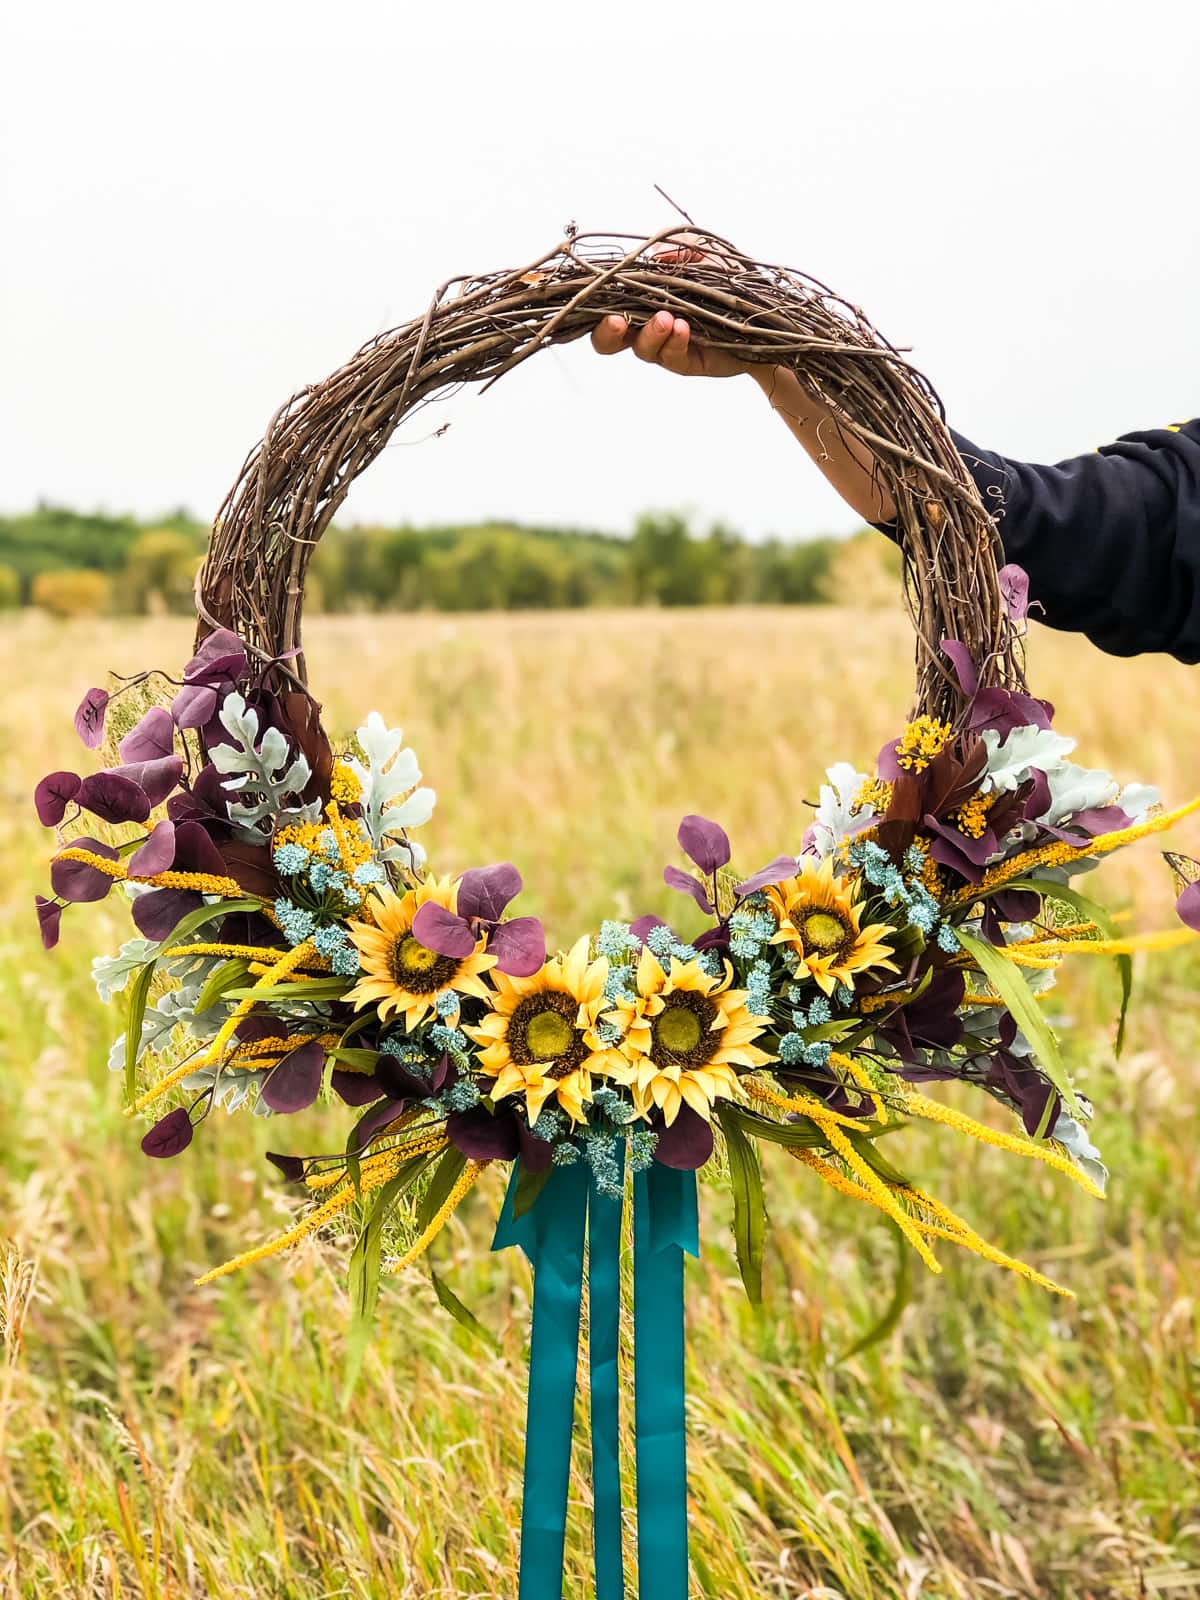 A picture of a wreath being held in a field